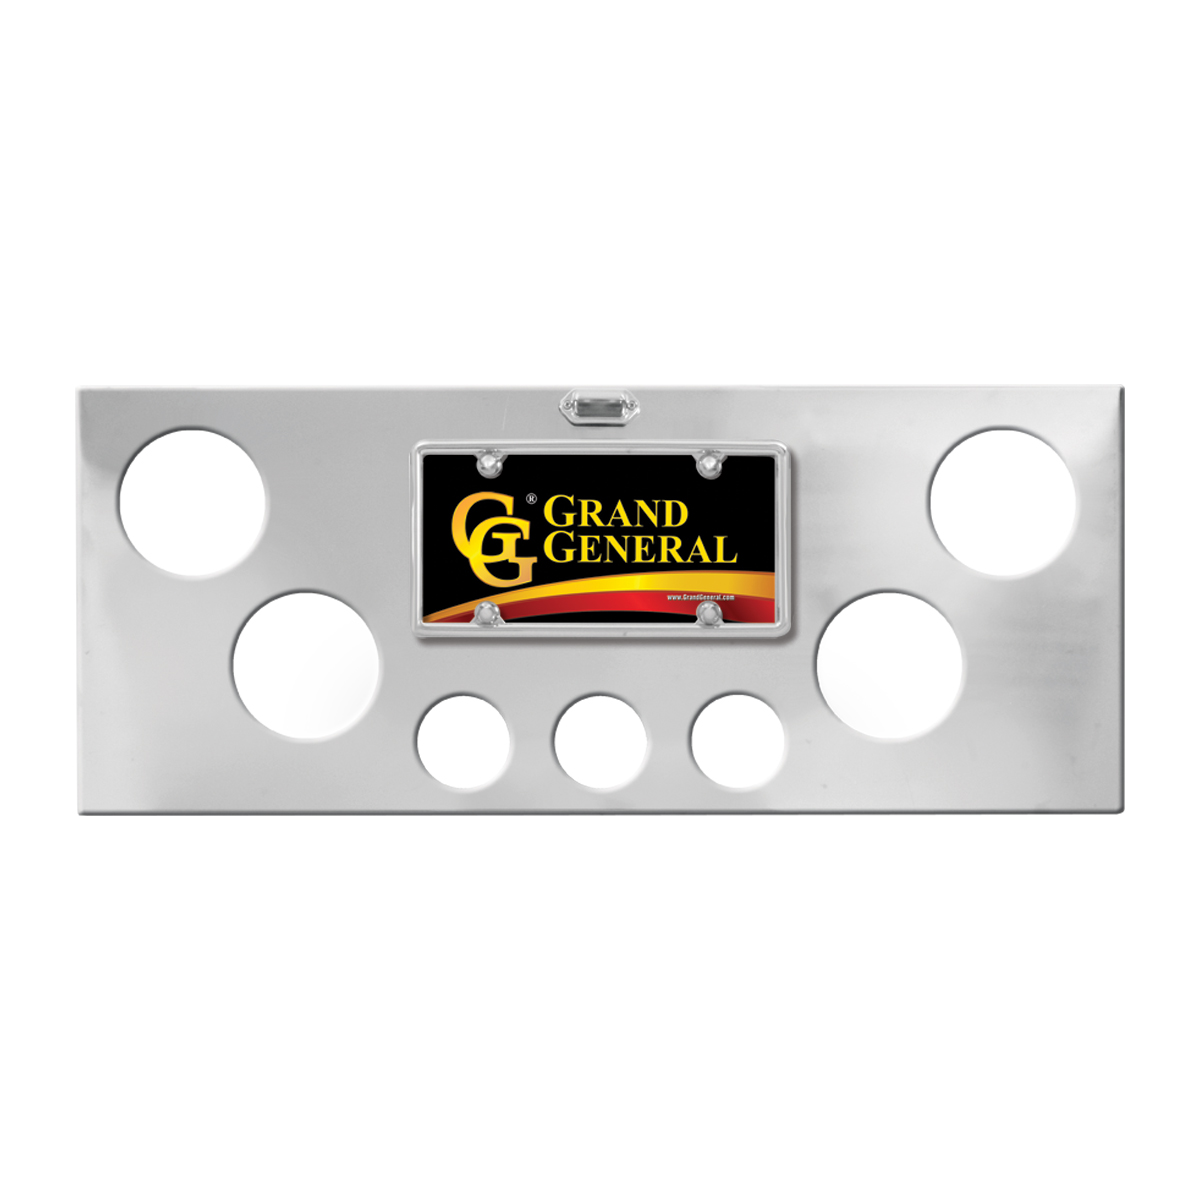 #91639 - Stainless Steel Panel Only